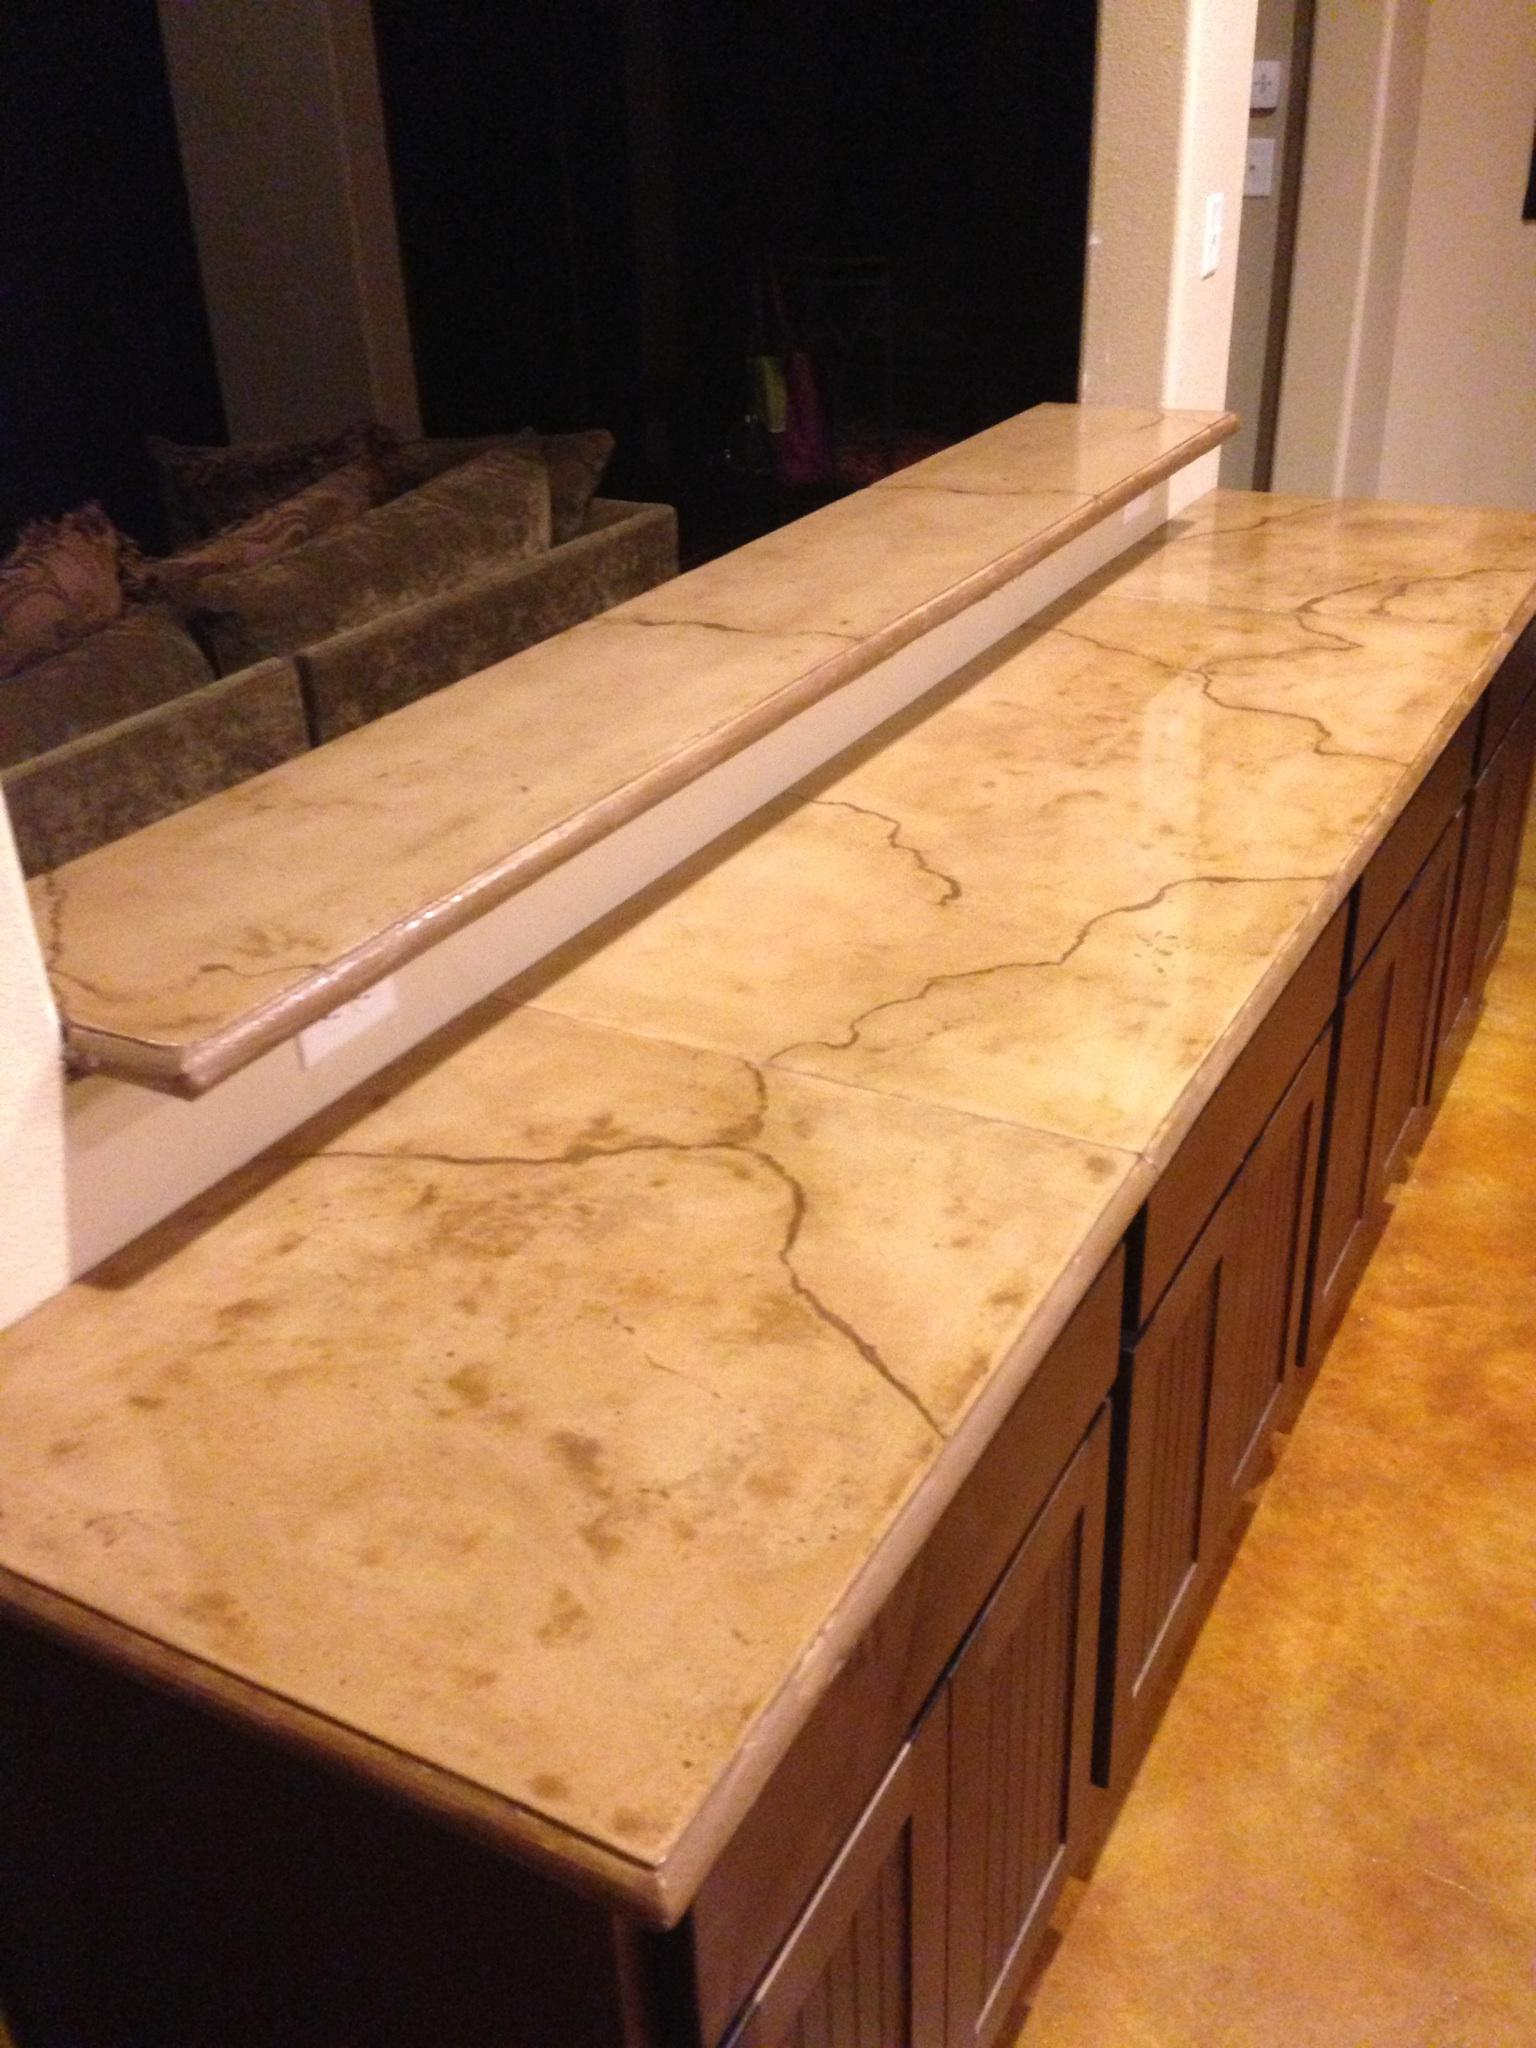 Finished Concrete Countertops Concrete Installer Discovers Concrete Countertops